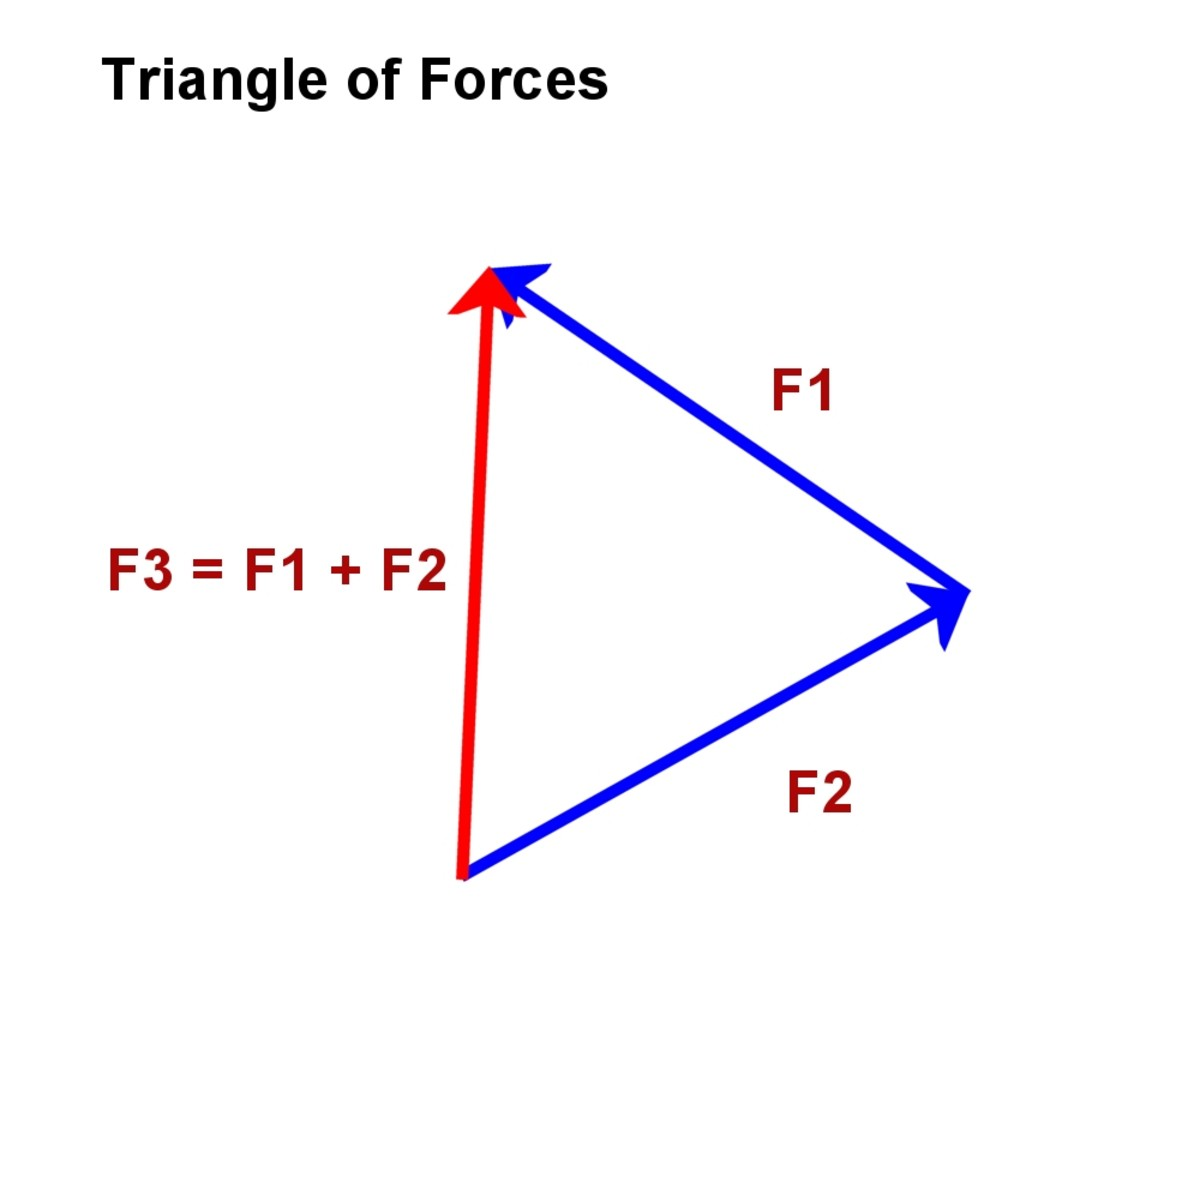 Triangle of forces. F3 is the sum of the two forces F1 and F2